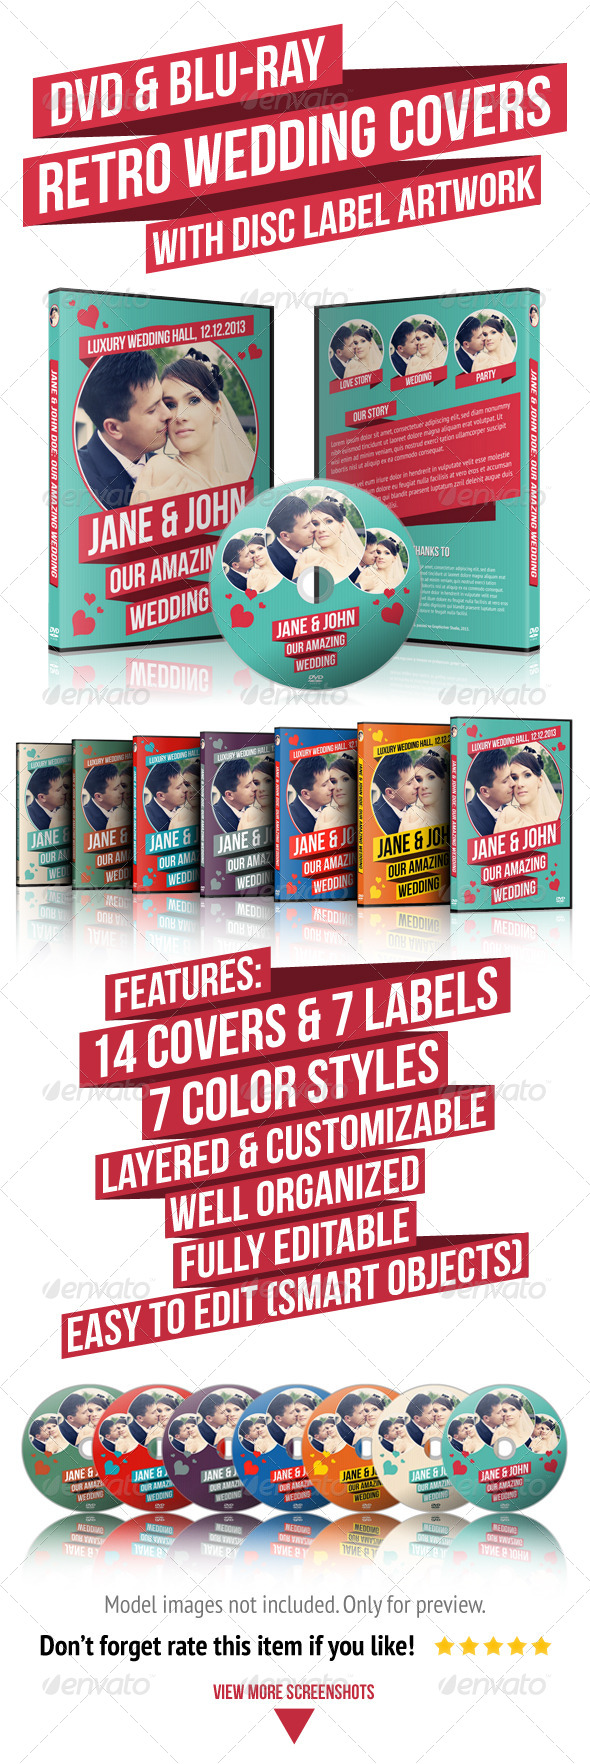 GraphicRiver Retro Wedding DVD & Blu-ray Covers With Disc Label 4828775